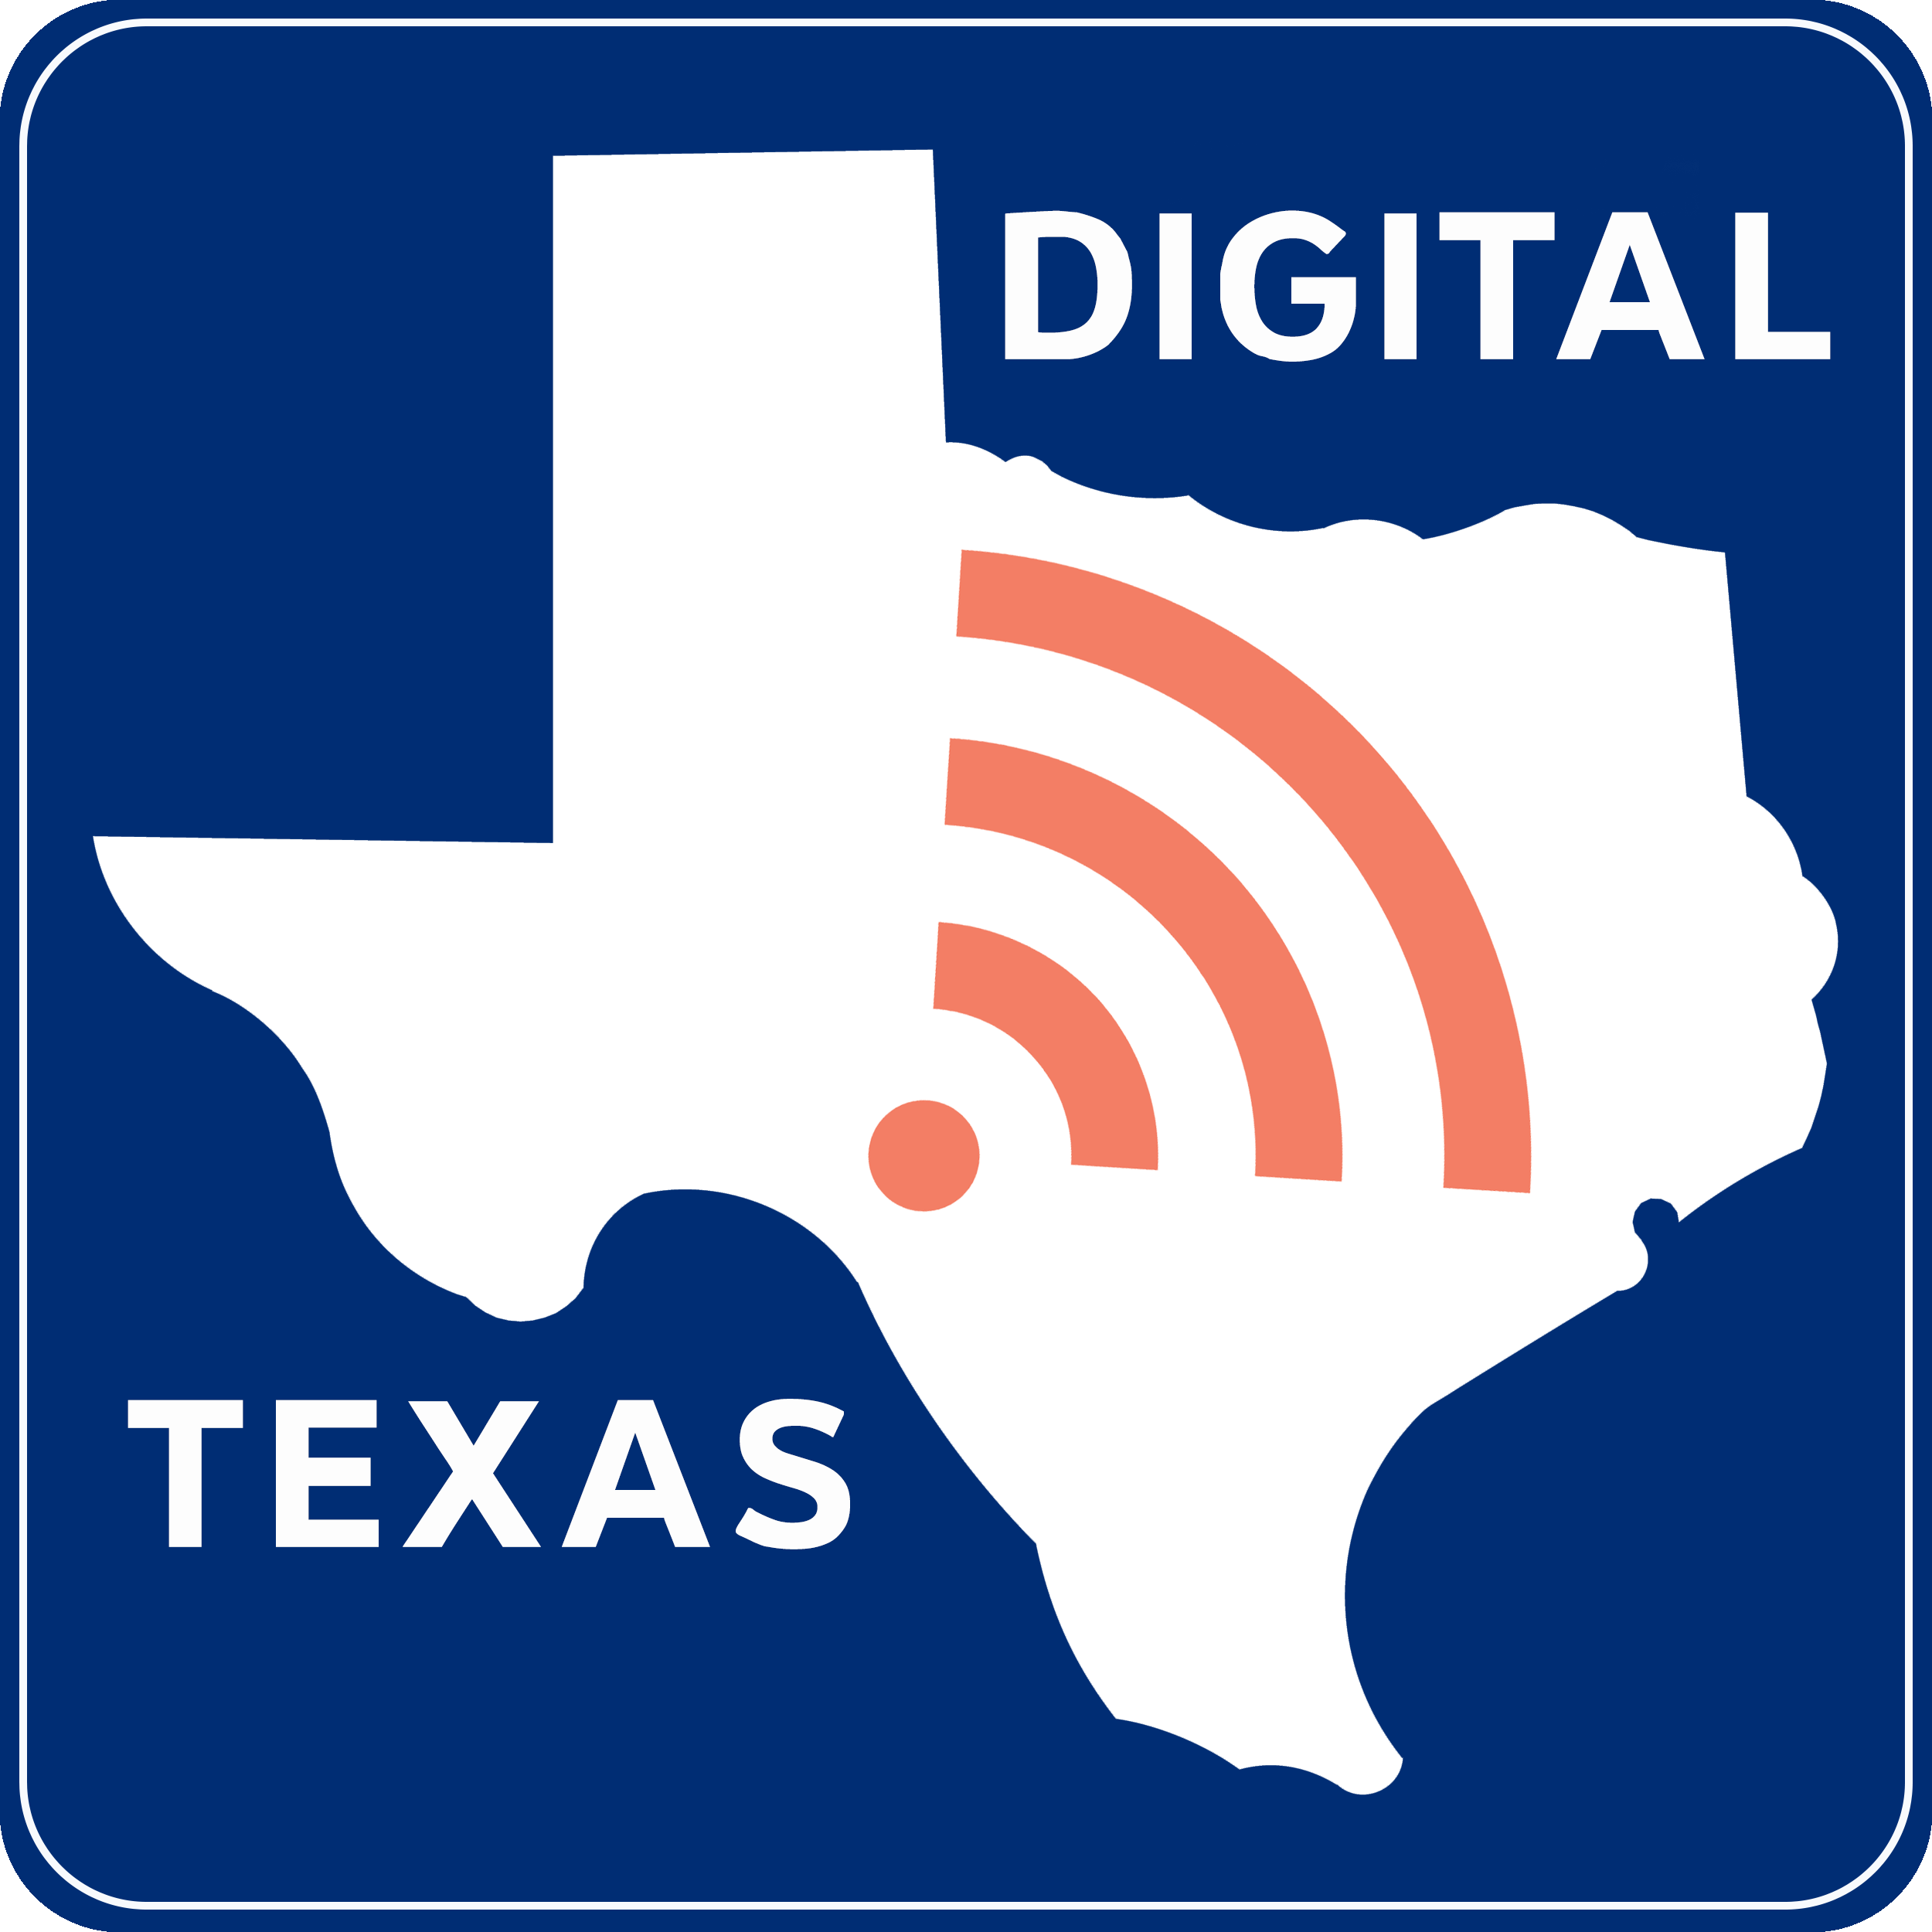 Digital Texas